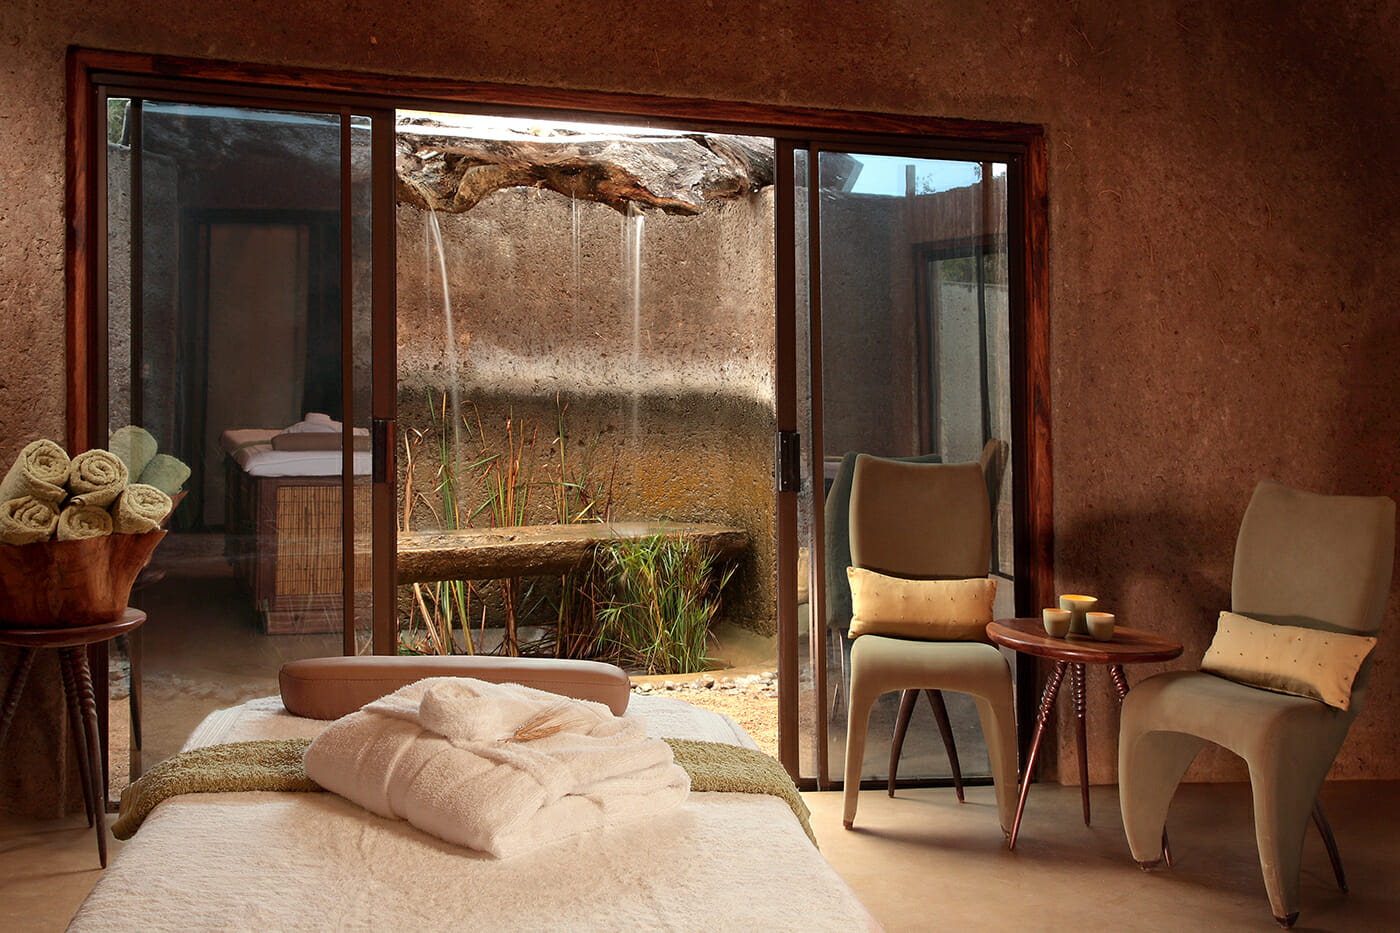 The tranquil space at The Amani Spa. Photo courtesy of Sabi Sabi Earth Lodge